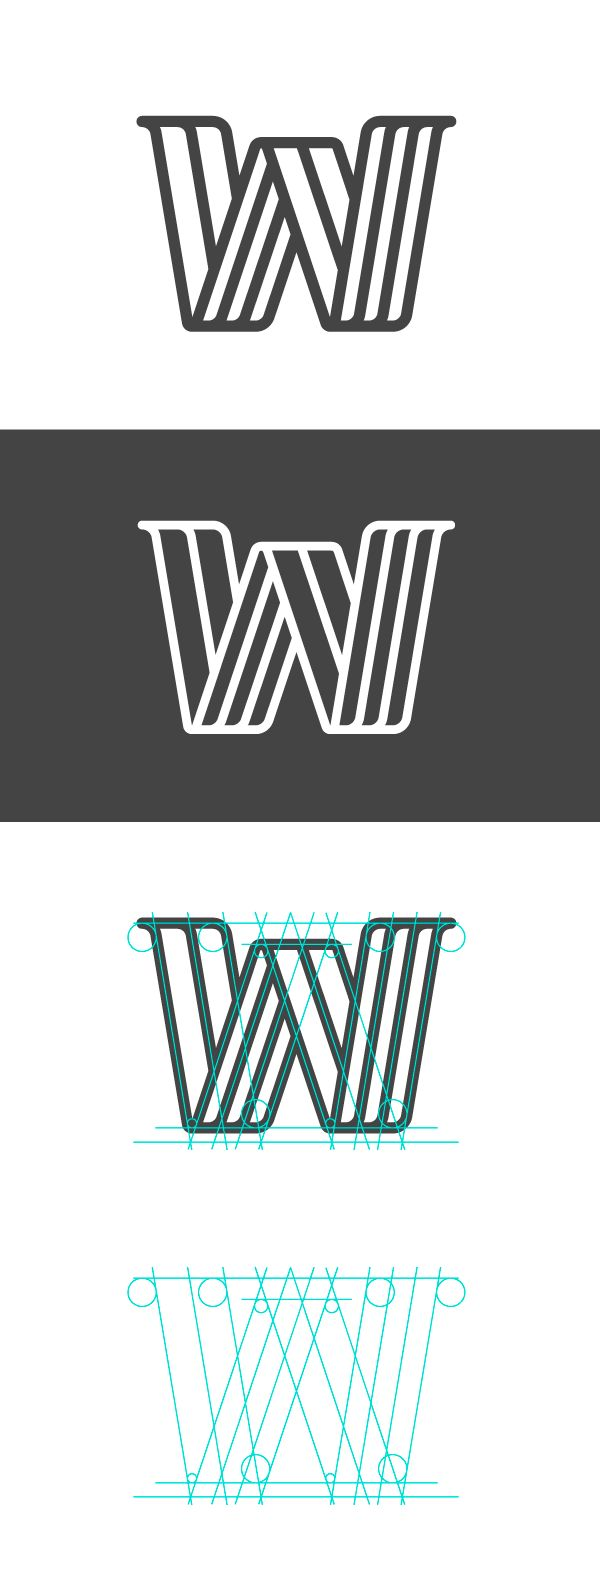 W logo - image 1 - student project